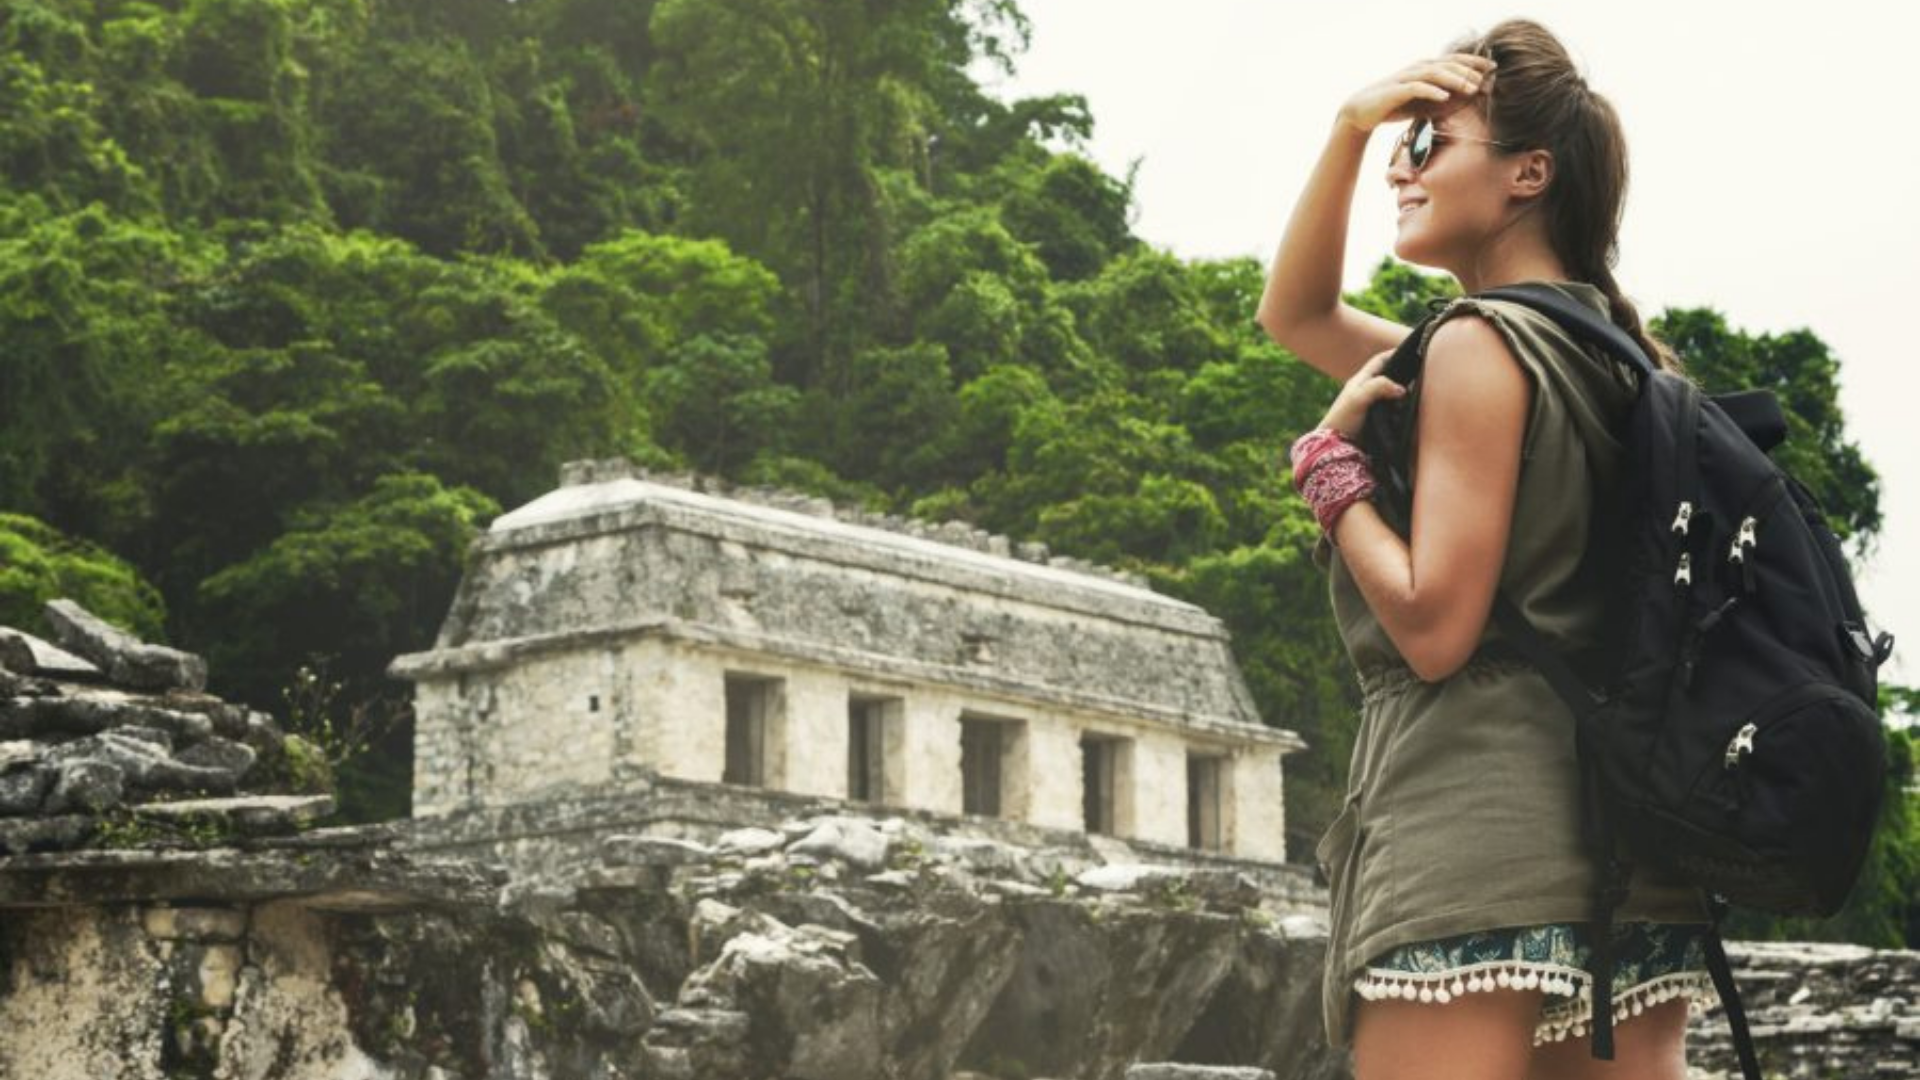 A female tour guide overlooks an ancient temple